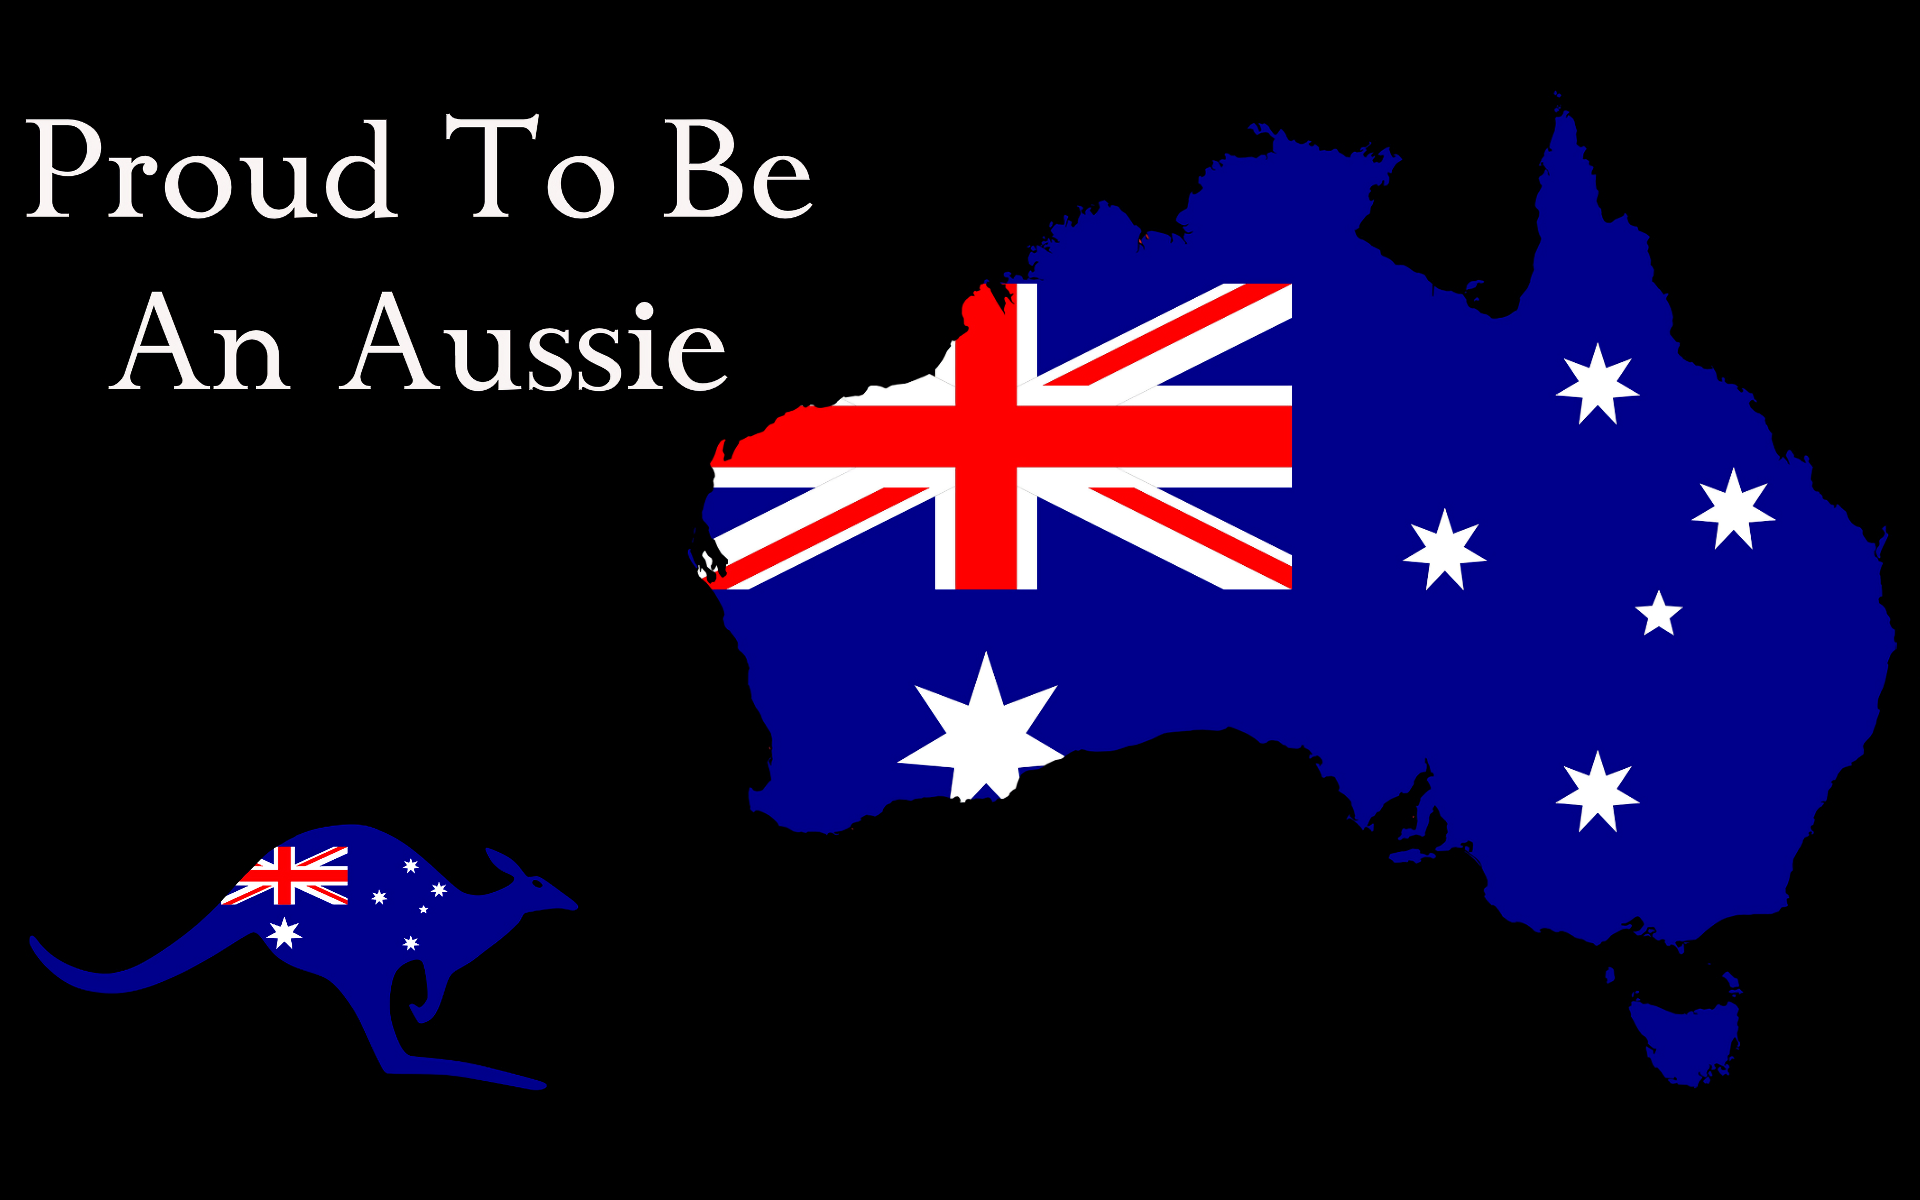 Proud To Be An Aussie HD Wallpaper Background Image 1920x1200 1920x1200